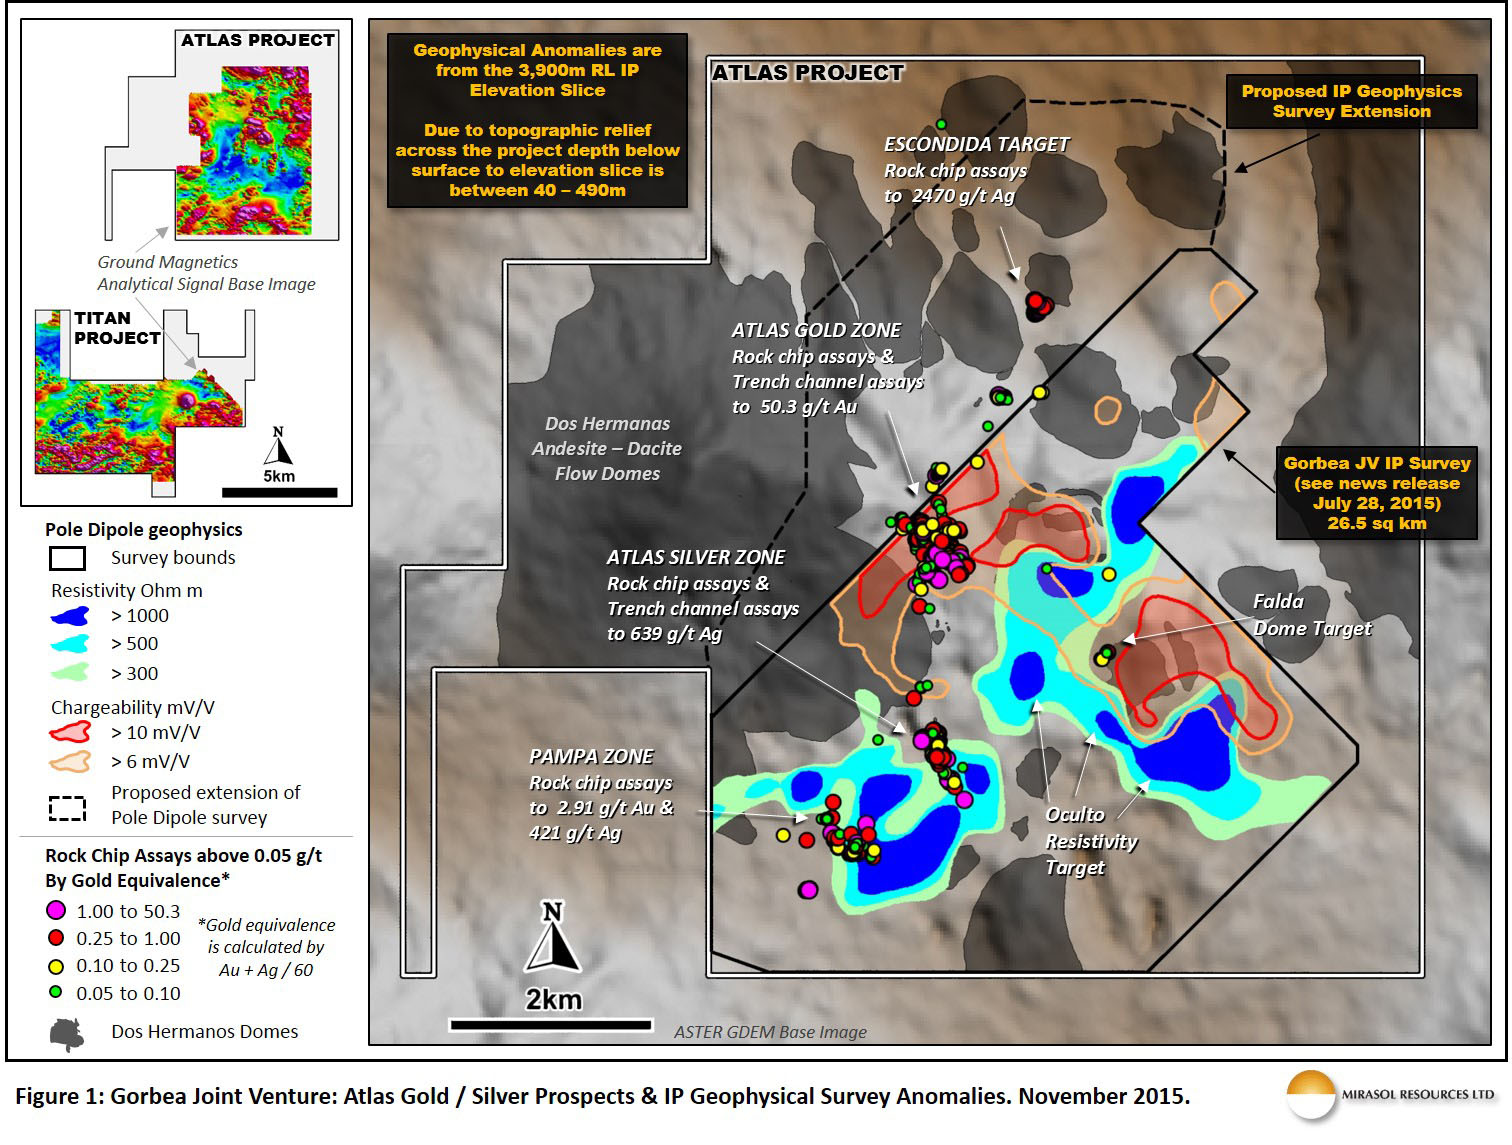 Figure 1: Gorbea Joint Venture: Atlas Gold / Silver Prospects & IP Geophysical Survey Anomalies. November 2015.